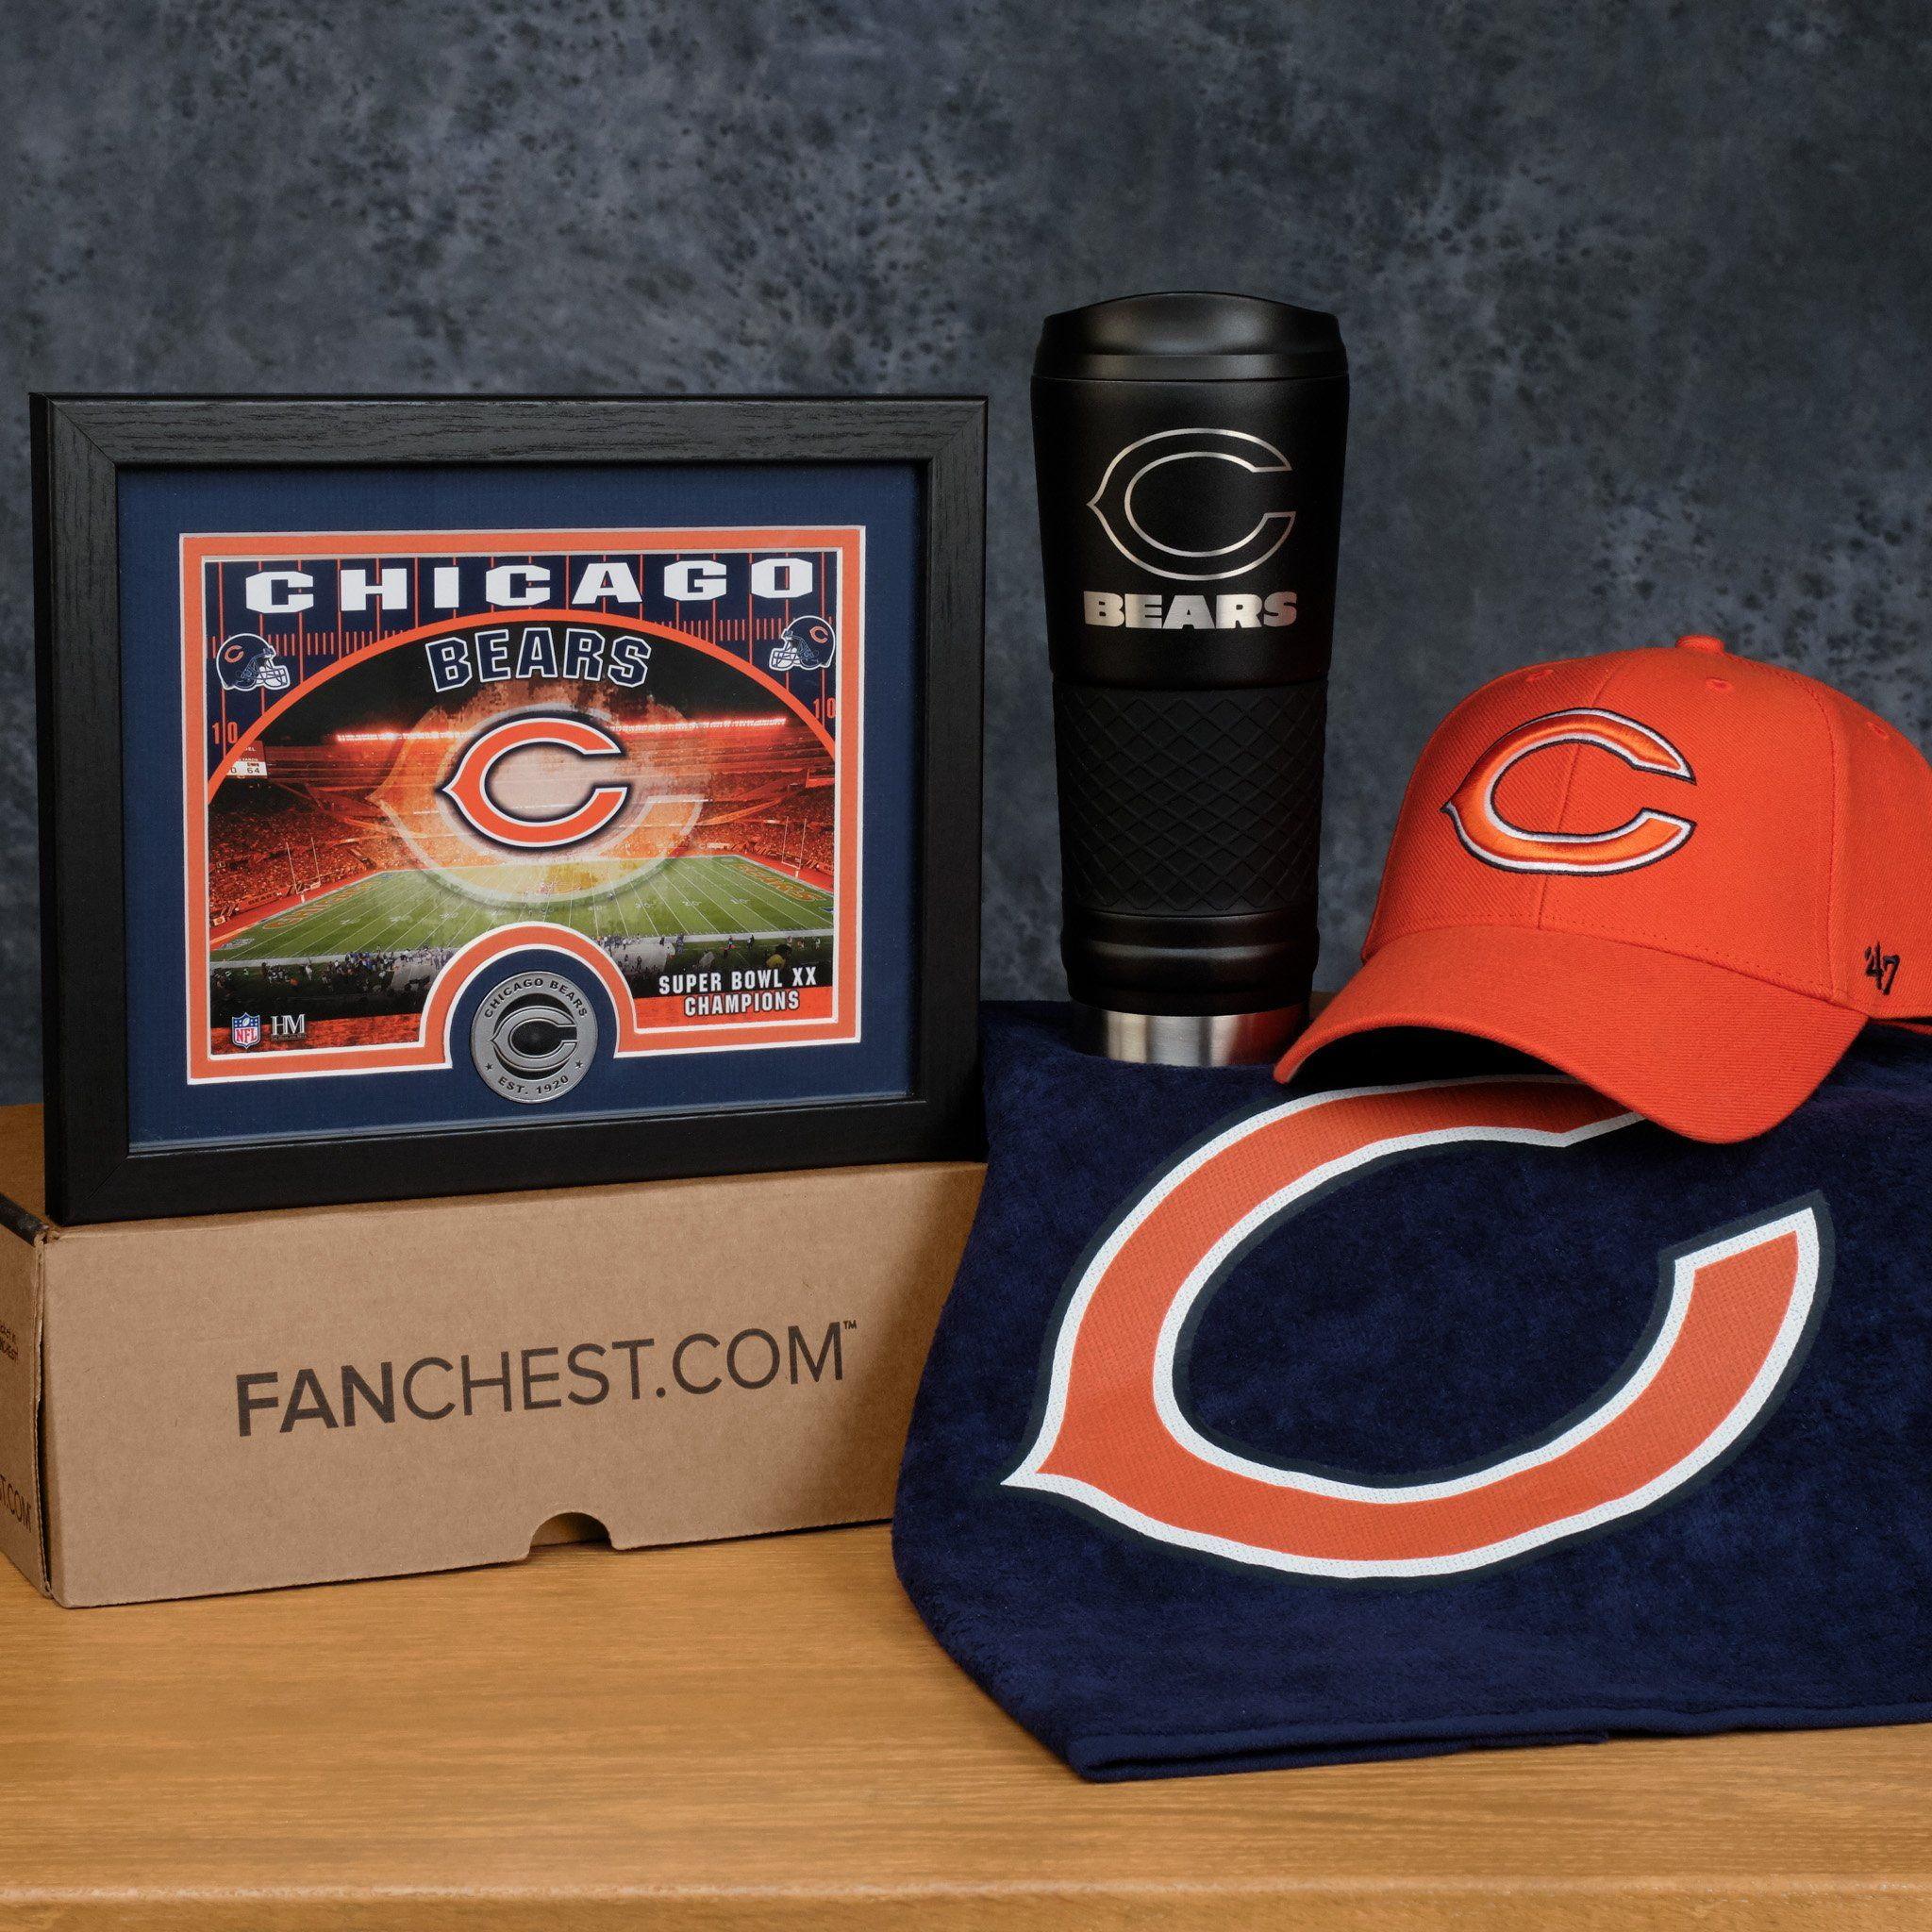 Chicago bears fanchest deluxe chicago bears gifts for